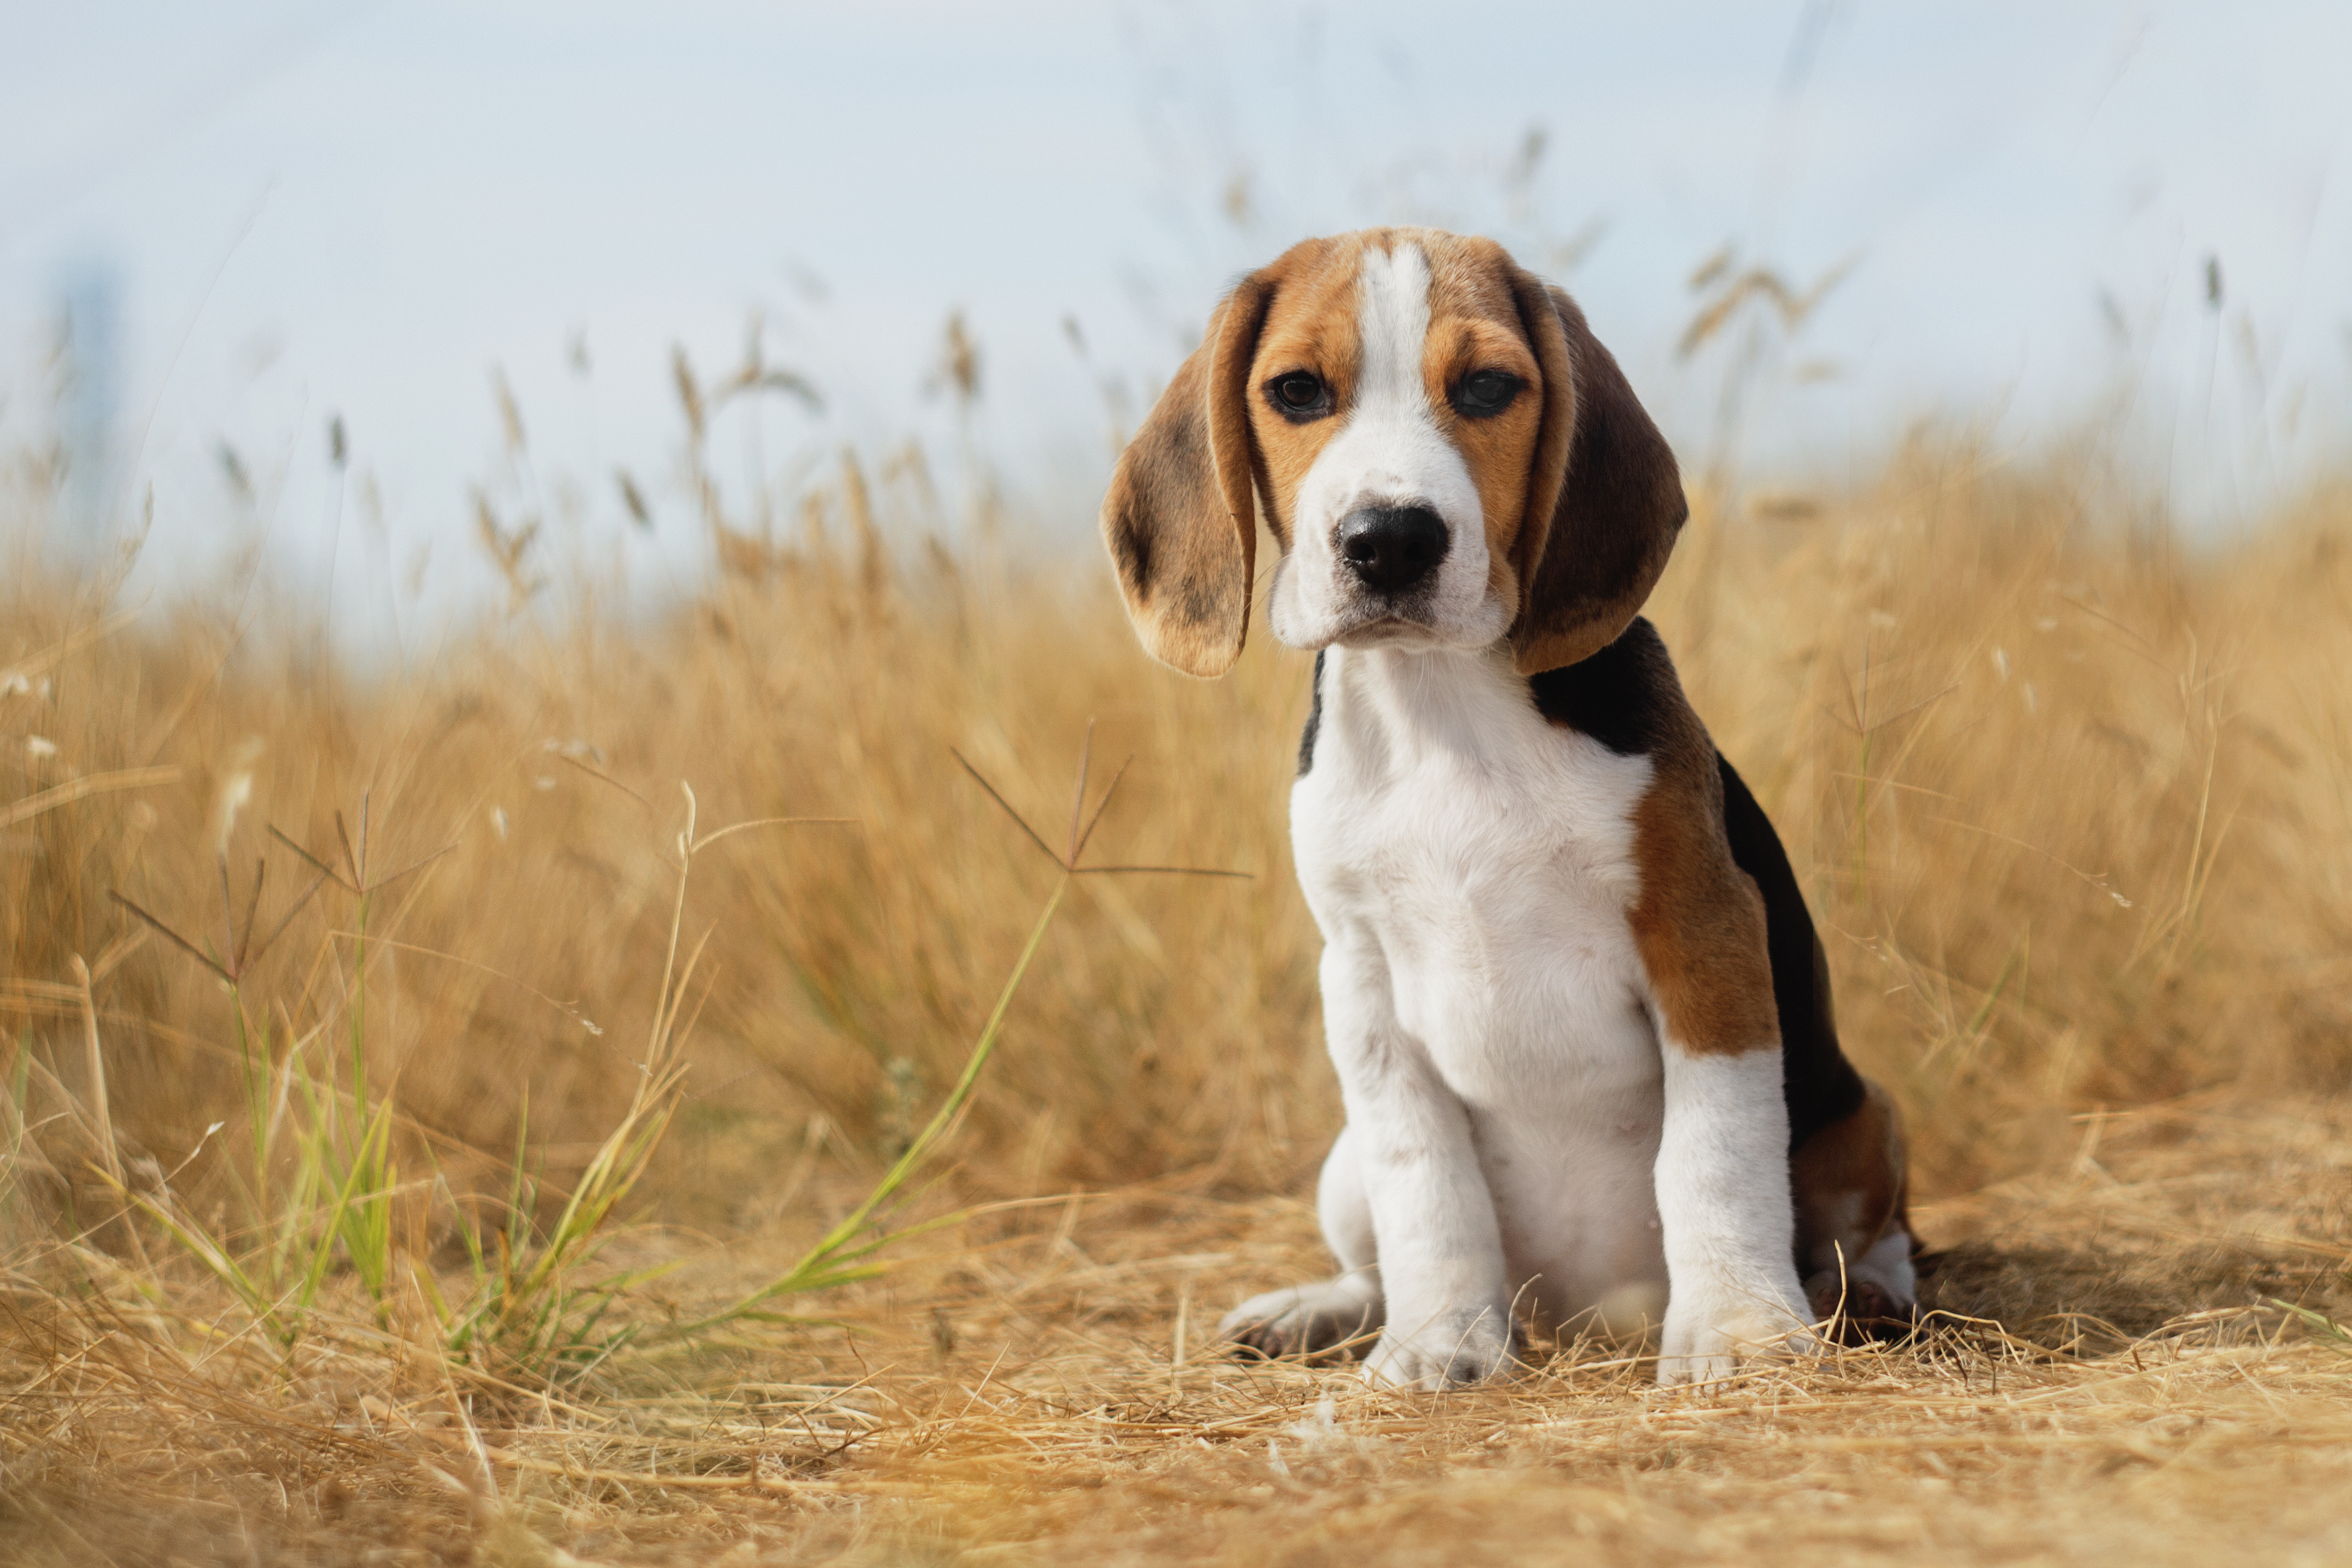 Beagle puppy sitting in field of tall grass.